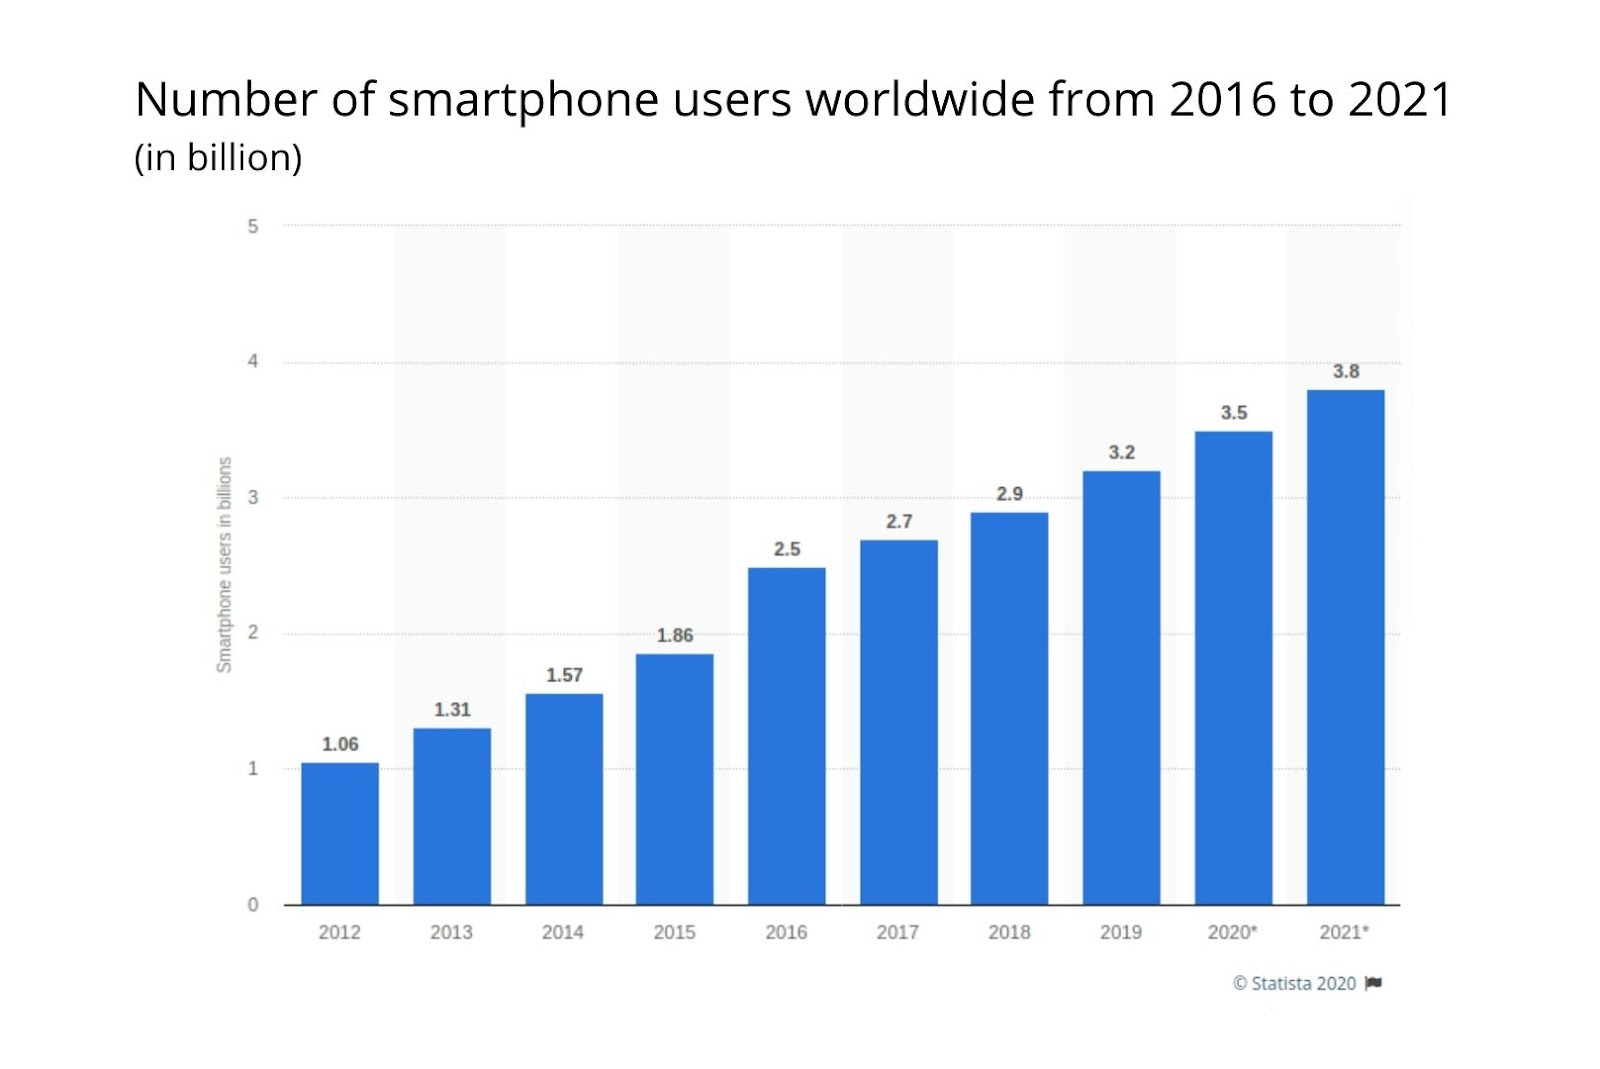 Number of smartphone users worldwide